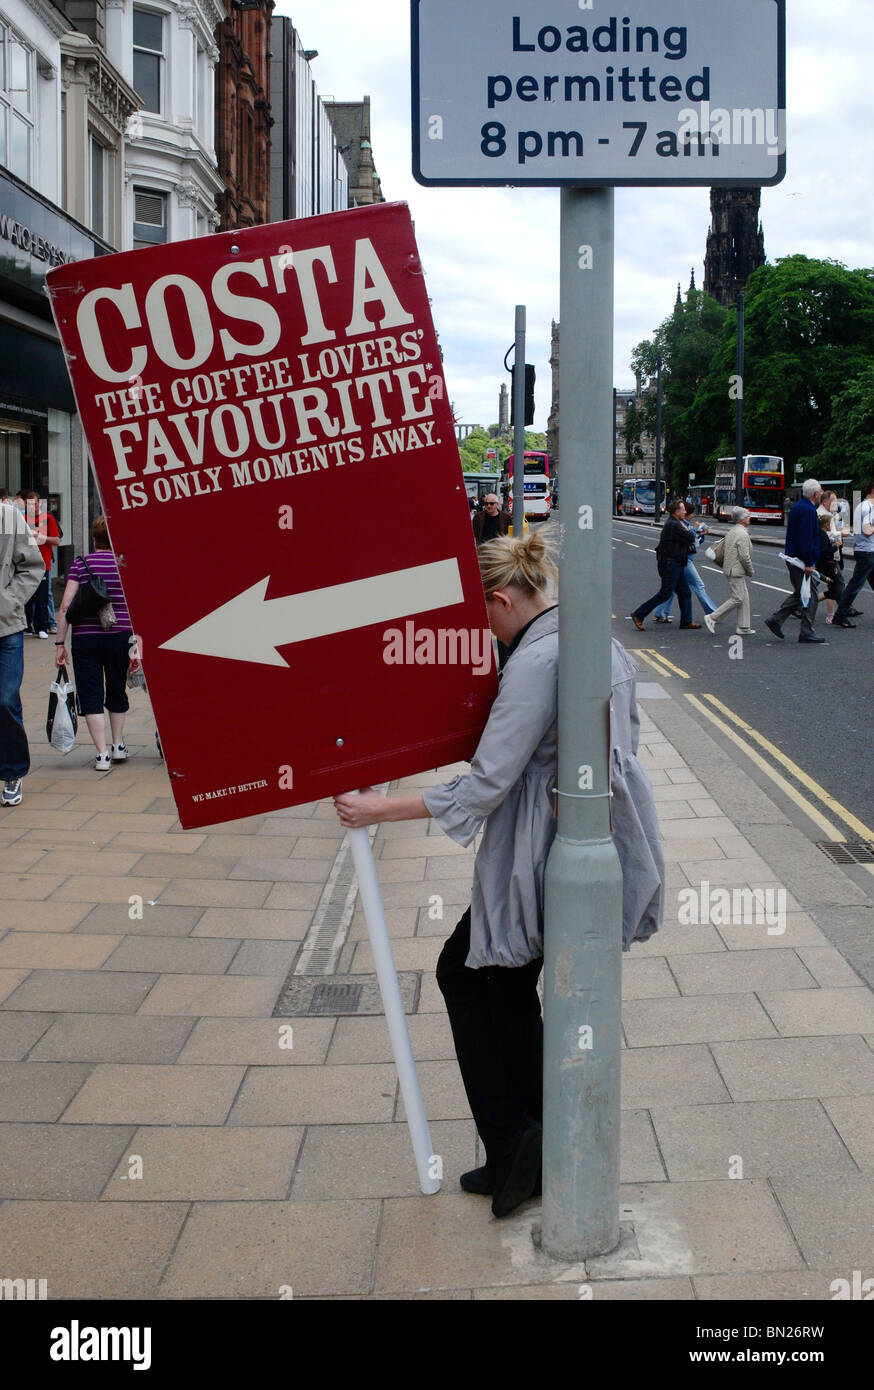 A girl holds an advertising sign for Costa Coffee on Princes Street, Edinburgh. - Stock Image